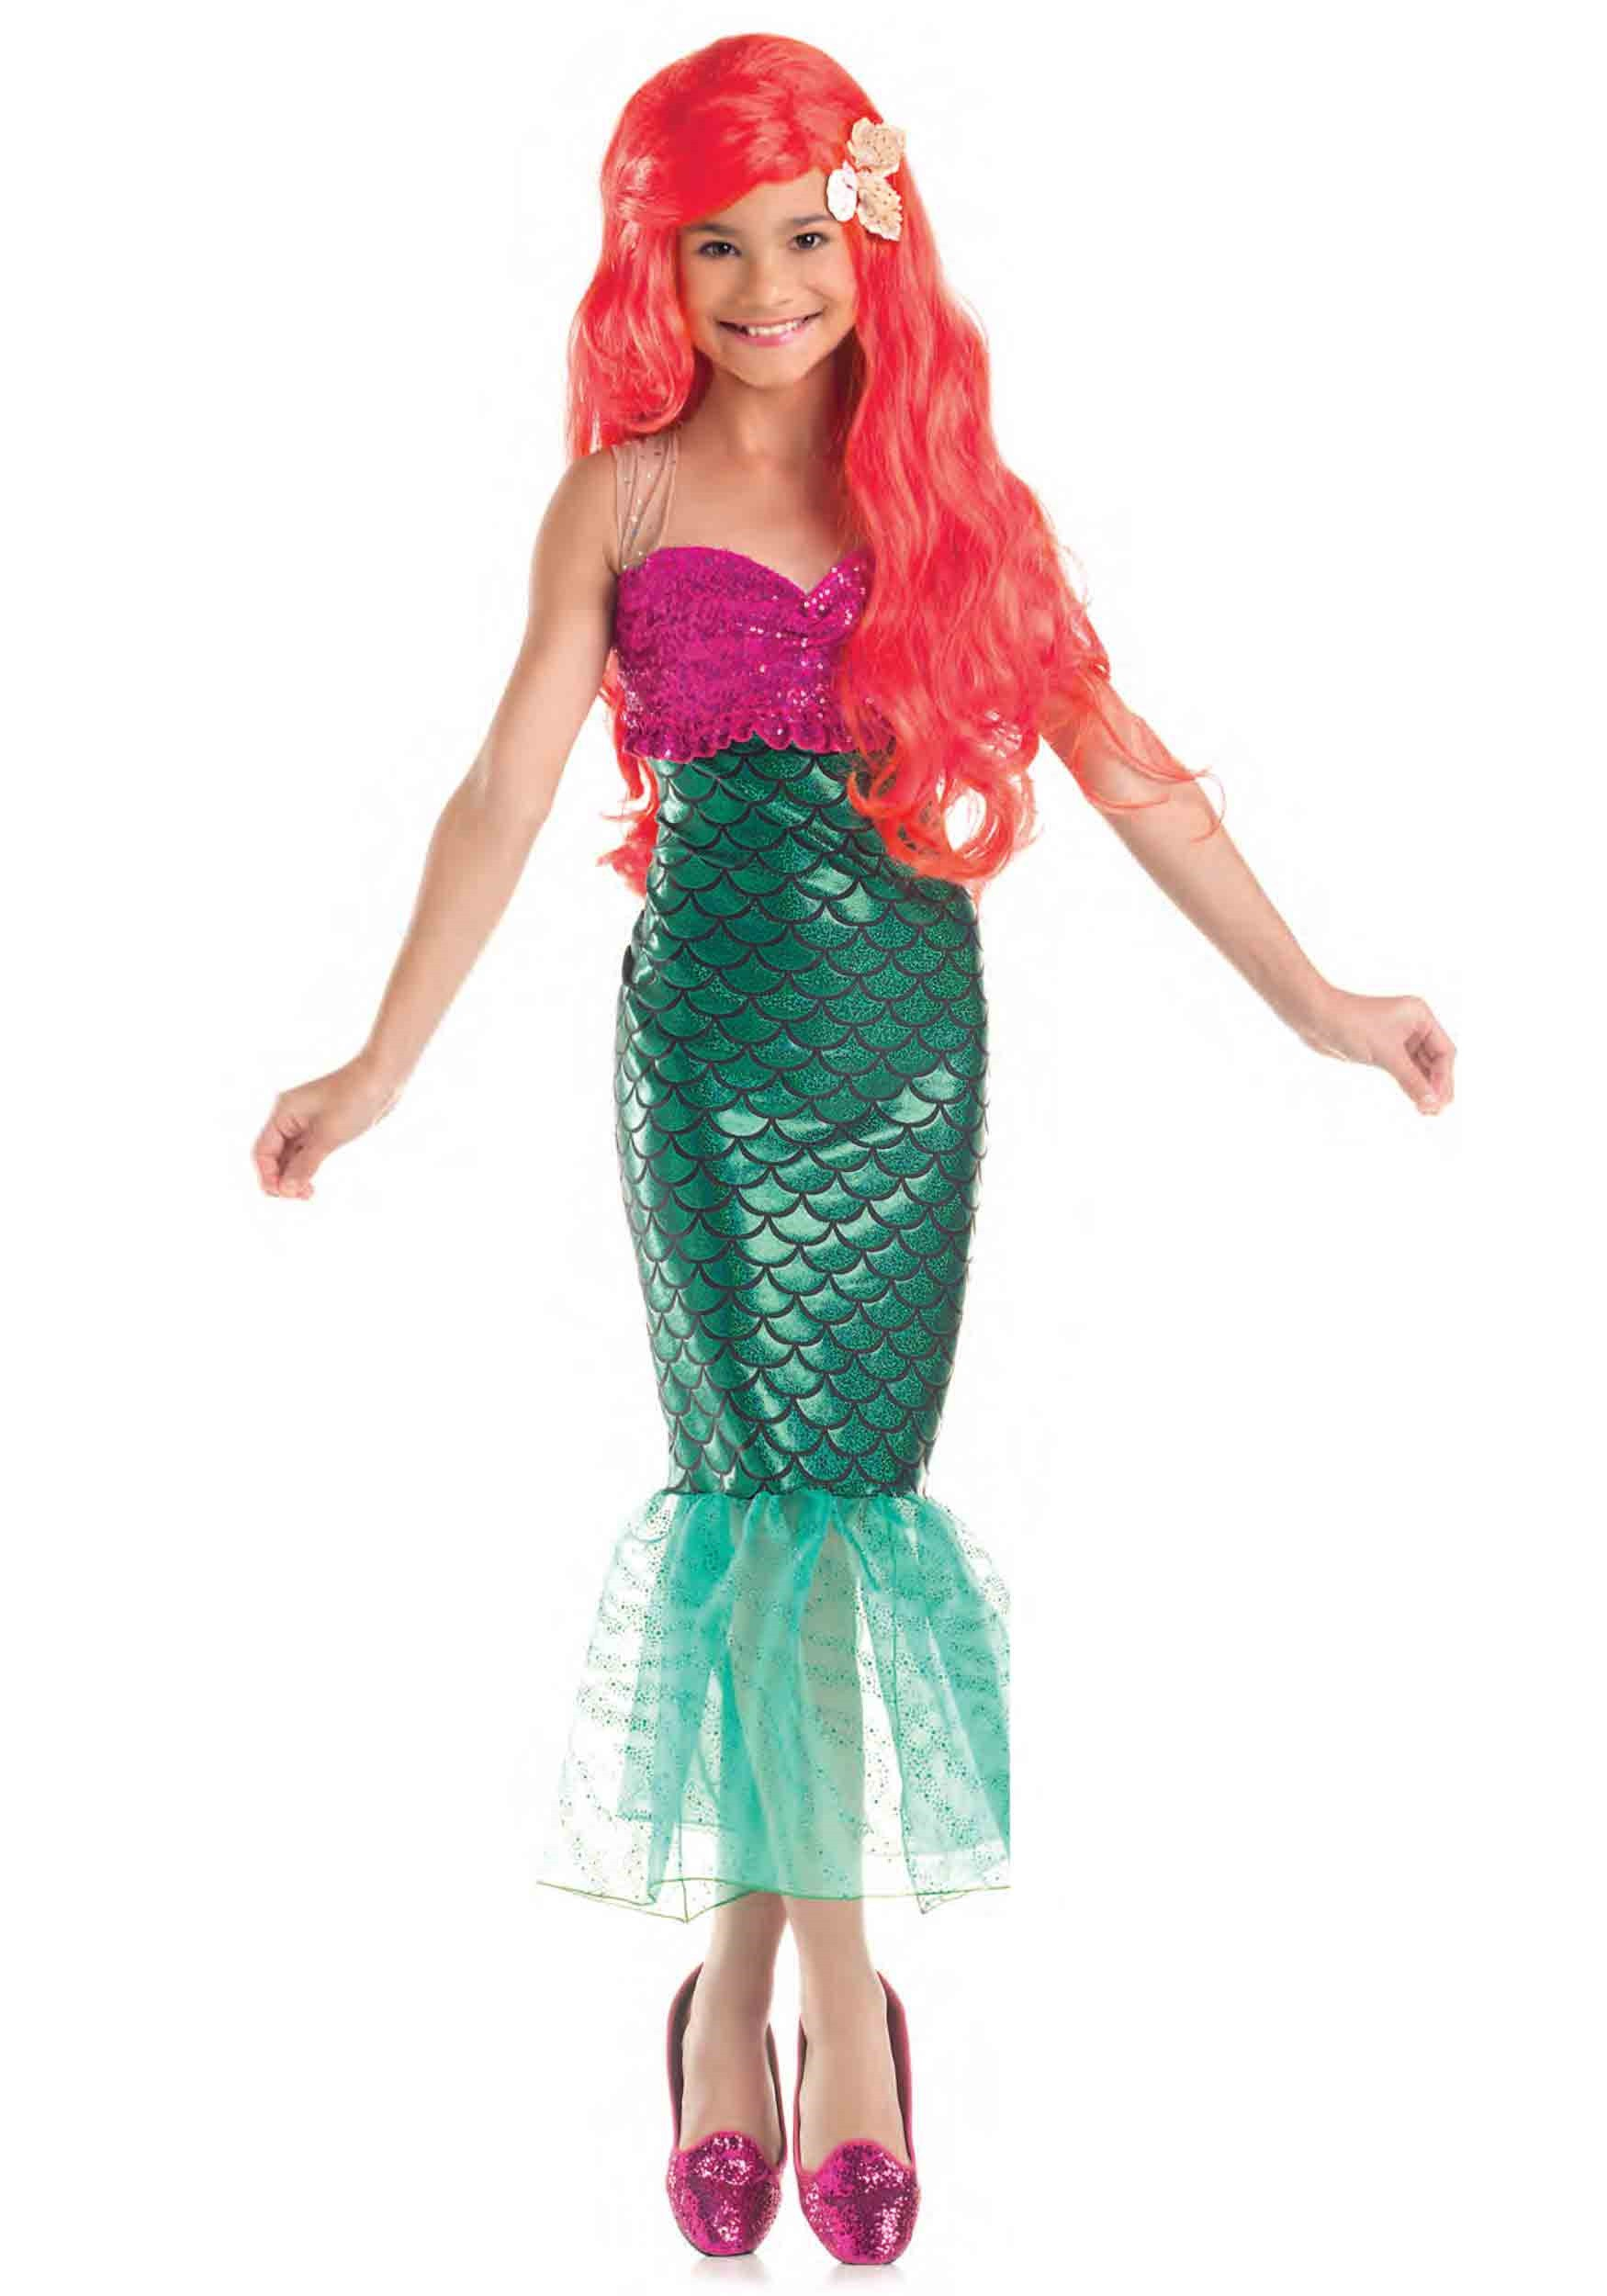 ariel girls Princess ariel is an independent and determined young mermaid she spends her days singing, daydreaming, dressing up and trying on difference beauty treatments that are meant to help her look flawless for her prince.